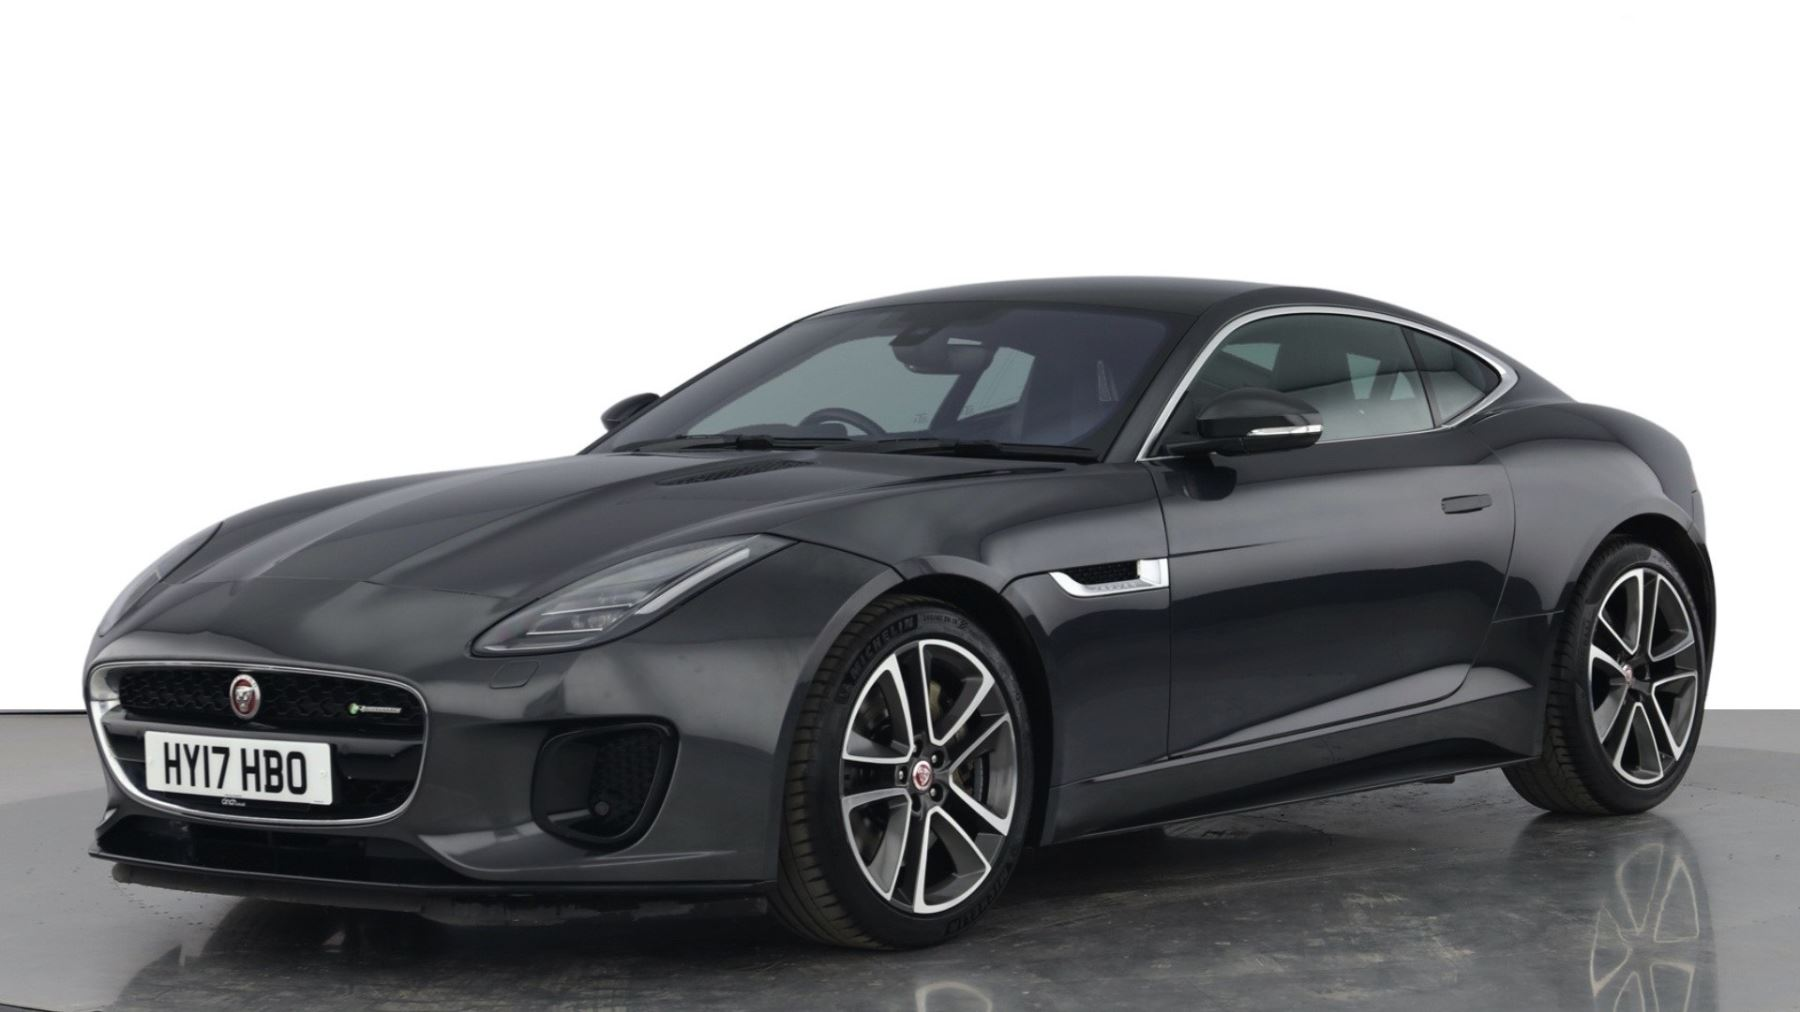 Jaguar F-TYPE 3.0 Supercharged V6 R-Dynamic with Panoramic Sunroof and Meridian Surround Sound image 6